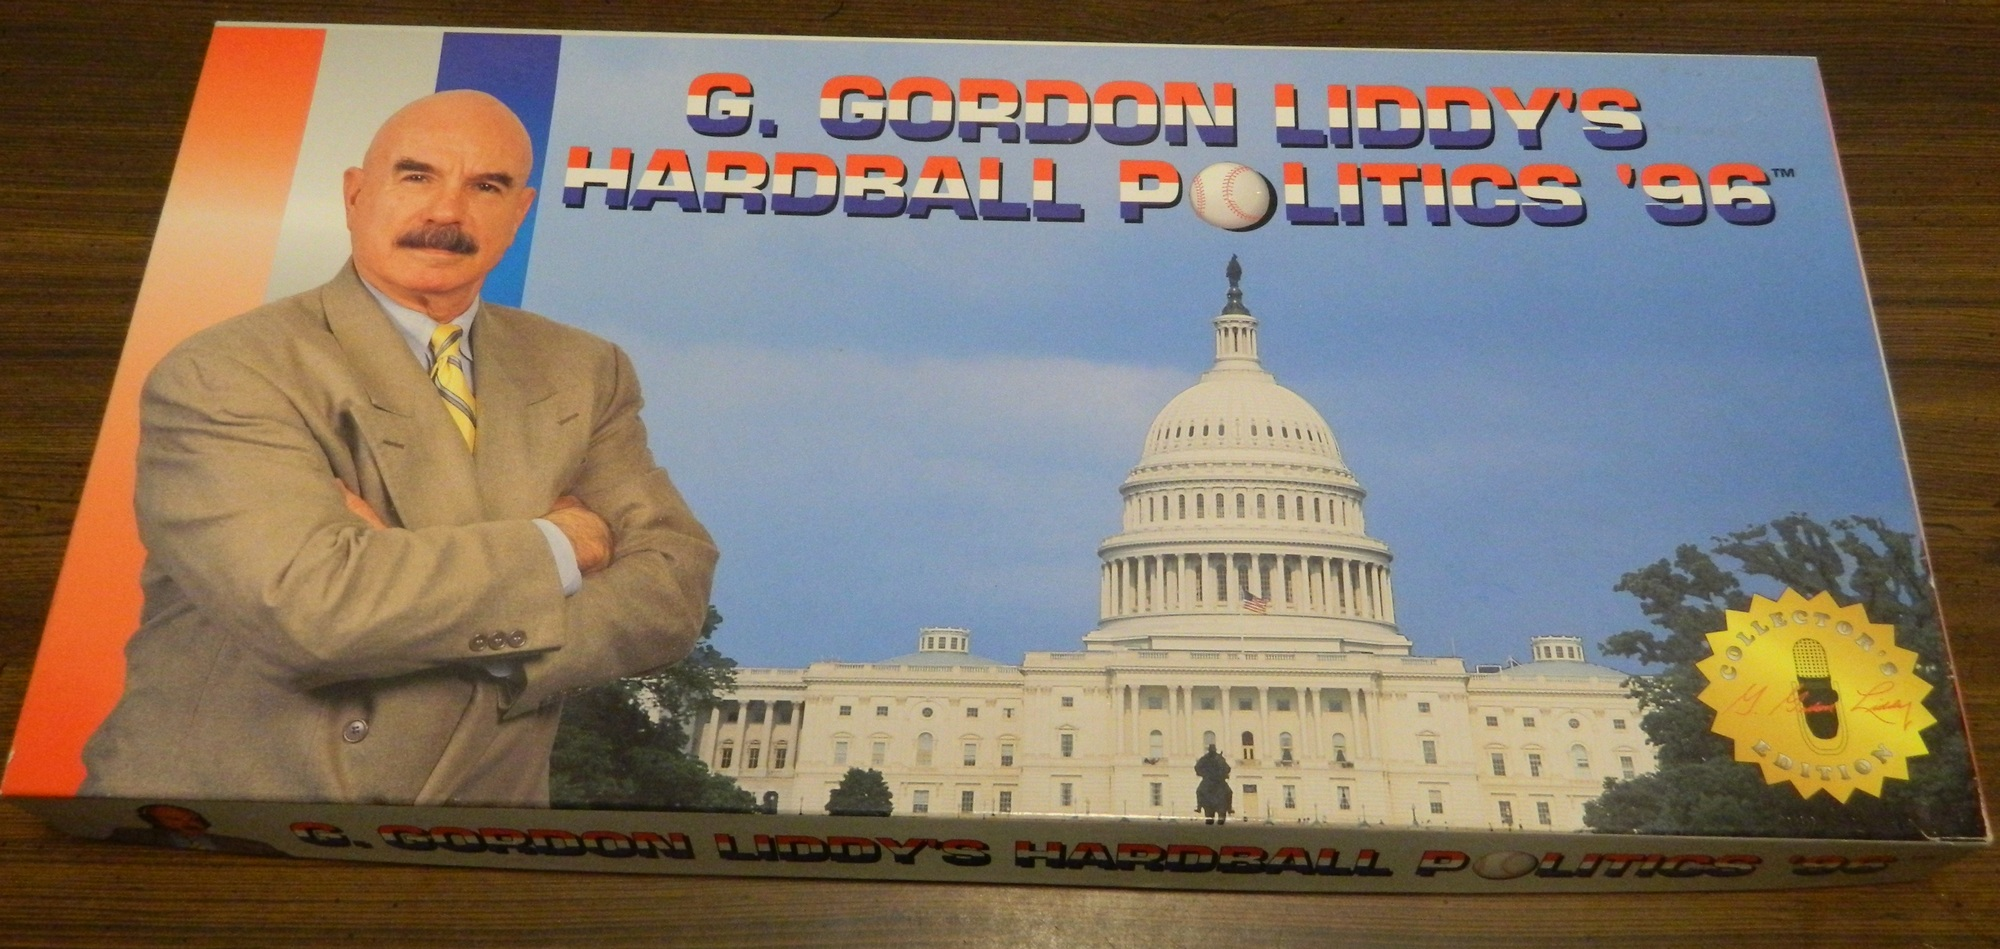 Box for G Gordon Liddy's Harball Politics '96